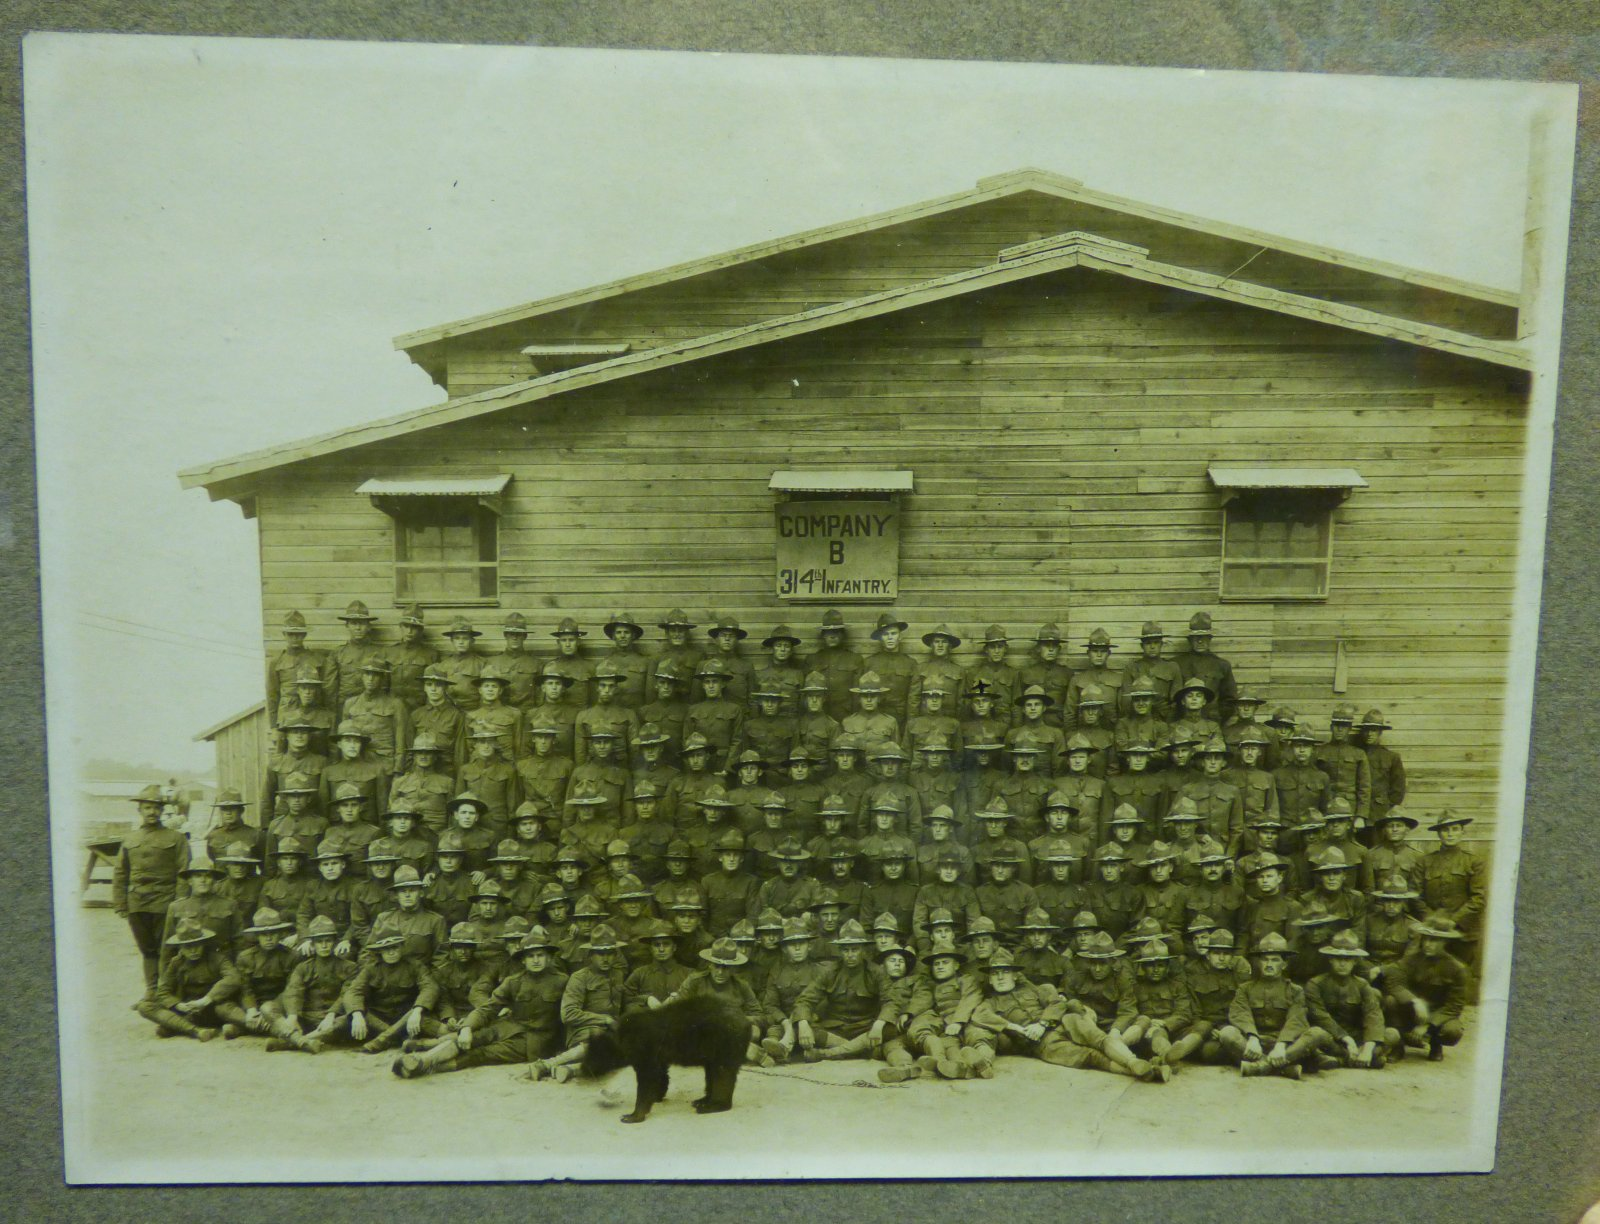 314th Infantry Log Cabin Memorial - Company B photo - with Black Bear - full photo at 1600 pixels